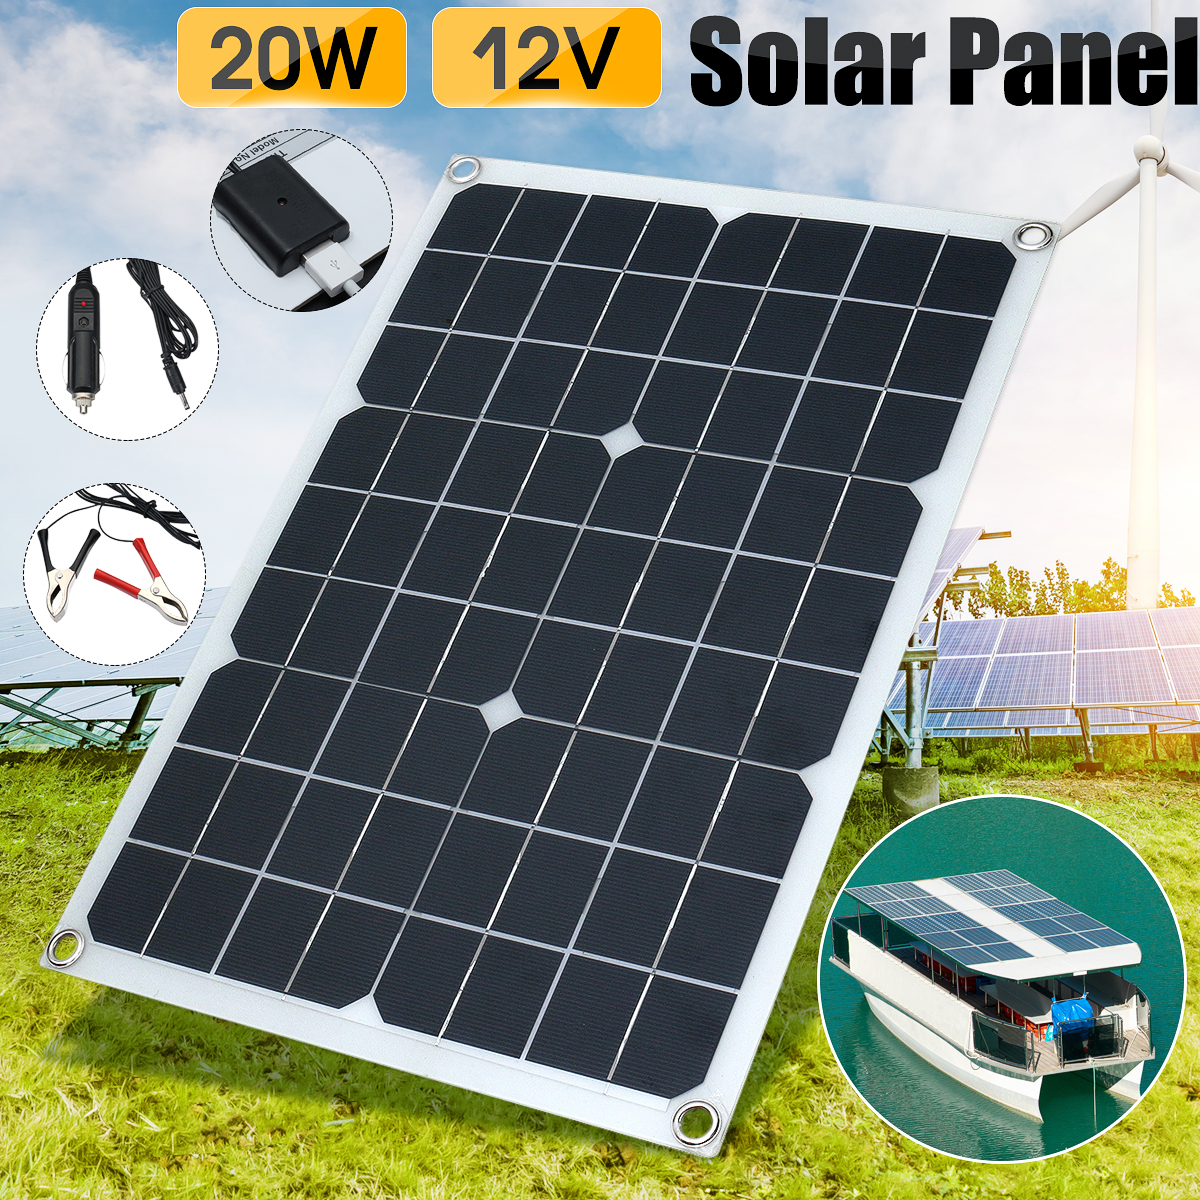 New 12V 20W Kinco Solar Panel  USB Monocrystalline Solar Panel with Car Charger for Outdoor Camping Emergency Light WaterproofNew 12V 20W Kinco Solar Panel  USB Monocrystalline Solar Panel with Car Charger for Outdoor Camping Emergency Light Waterproof